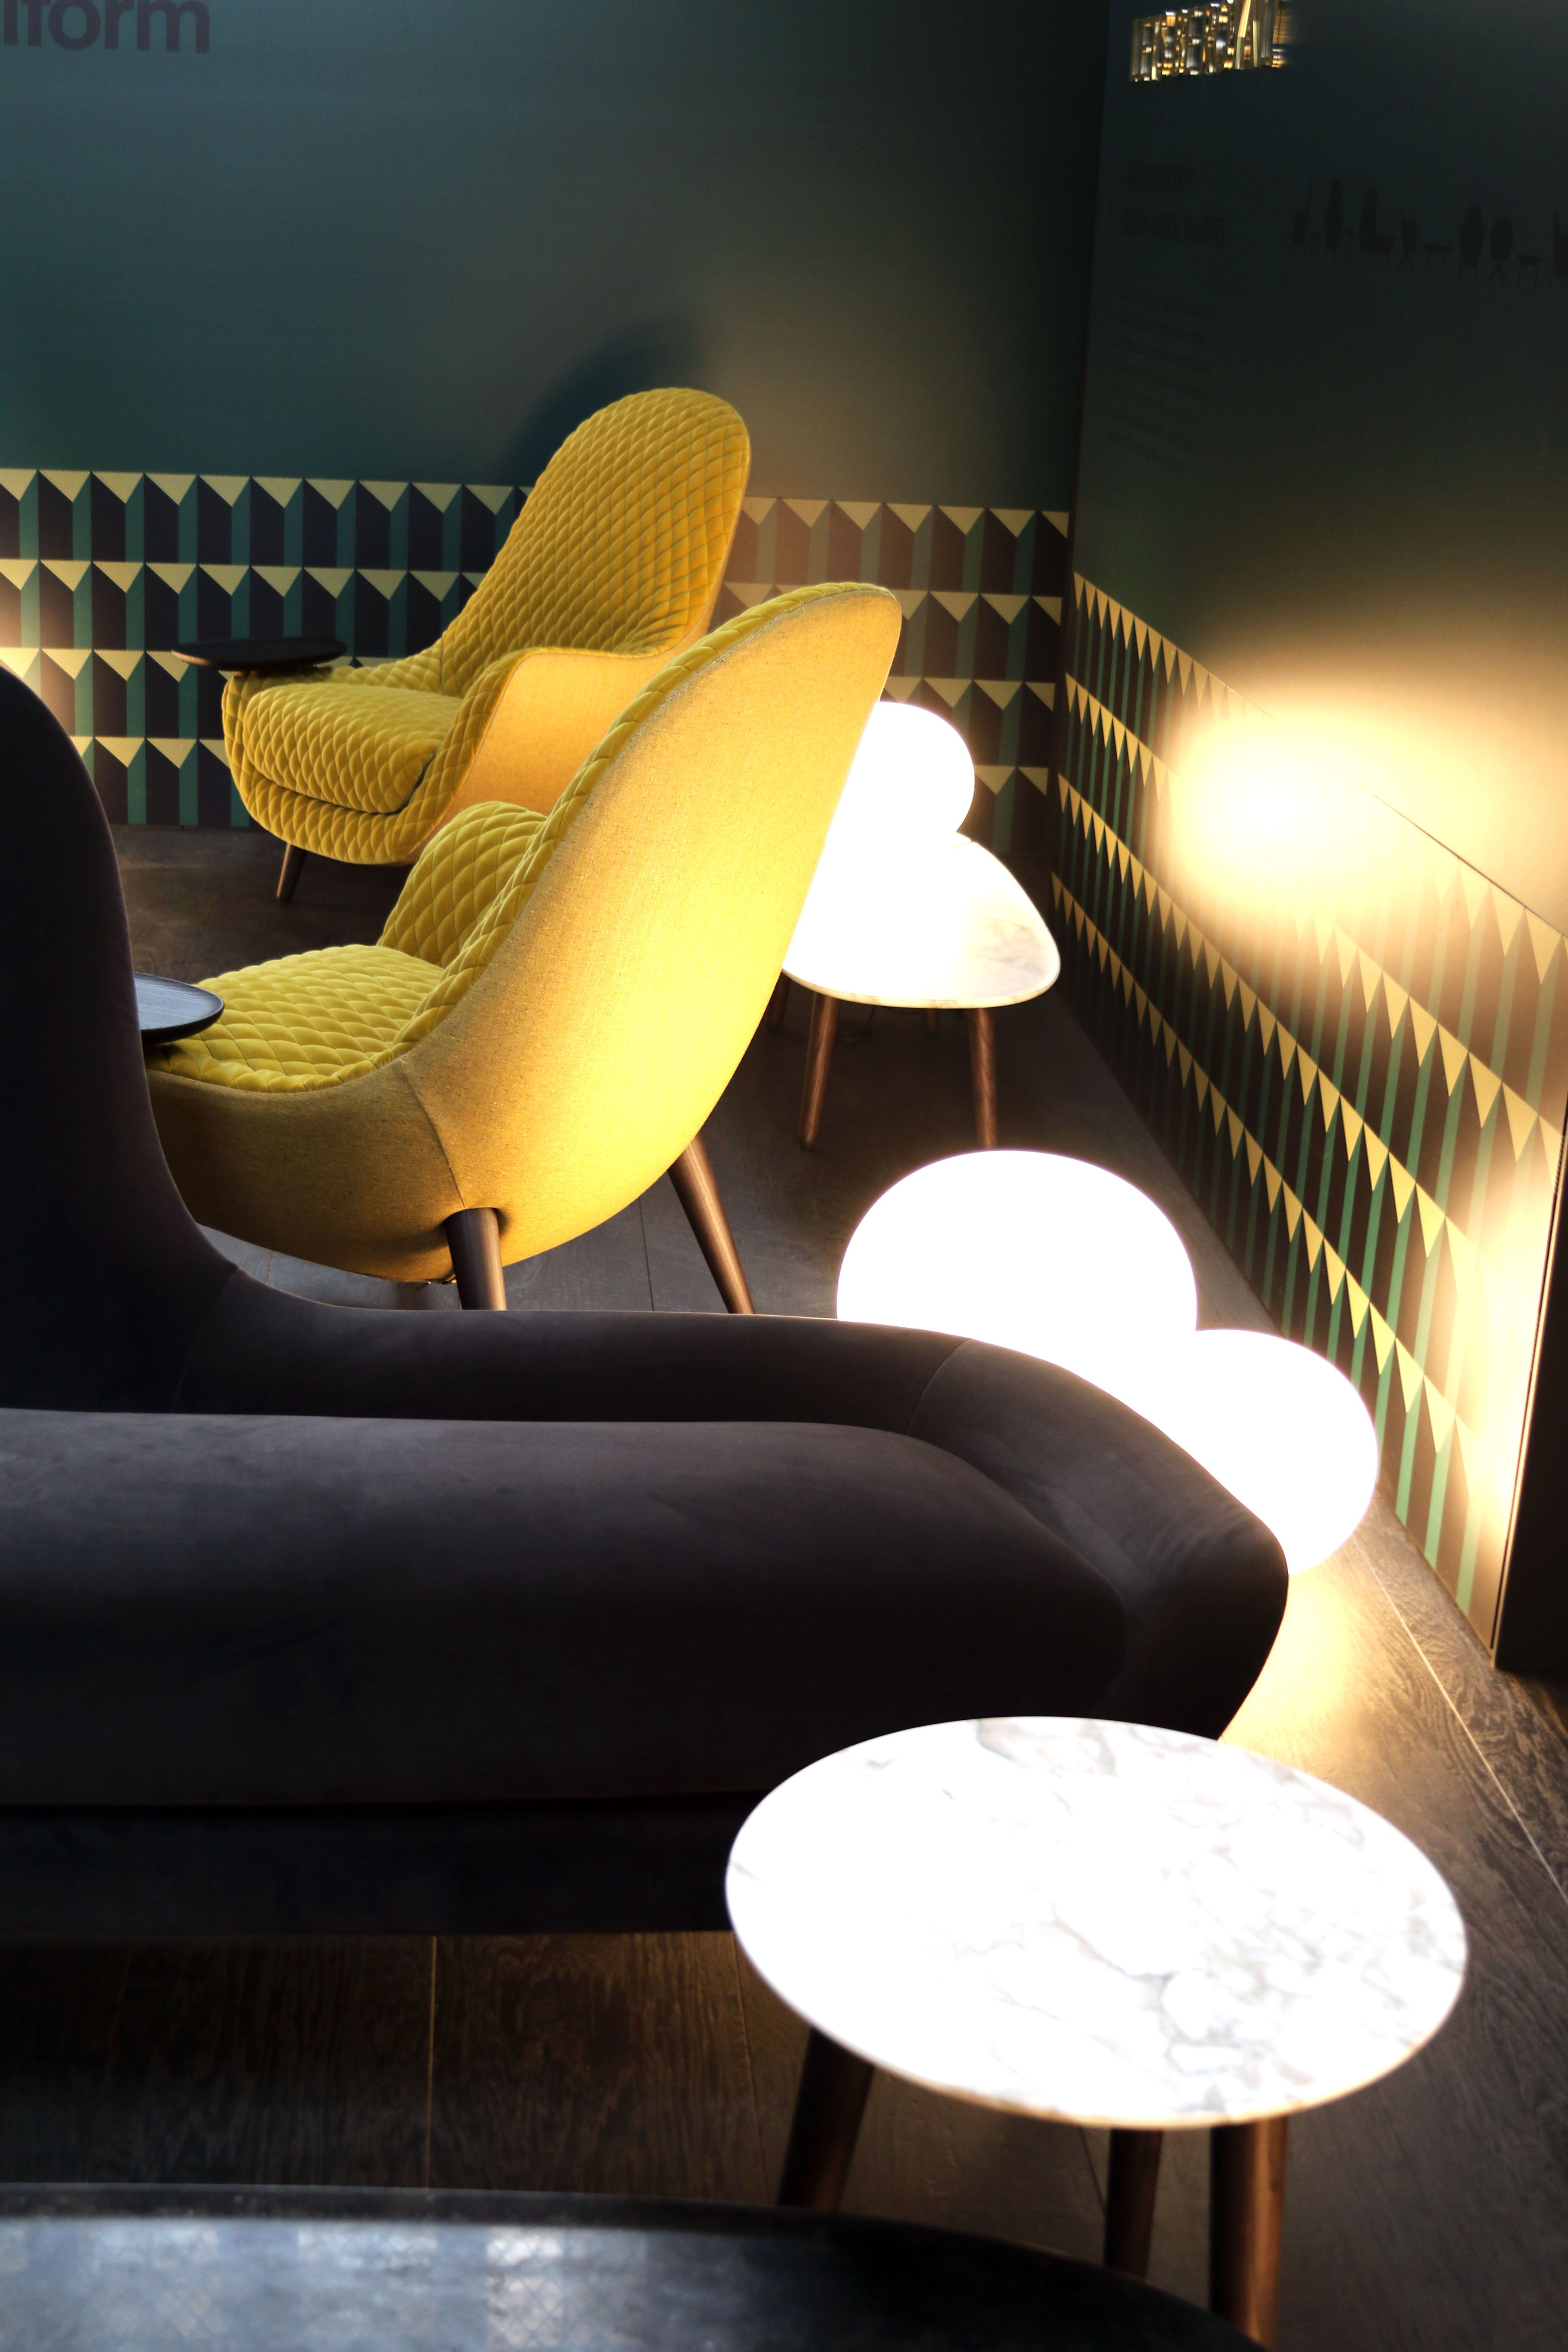 italian furniture company. Poliform, The Italian Furniture Company And Superyacht Industry Regular, Was In Attendance, For